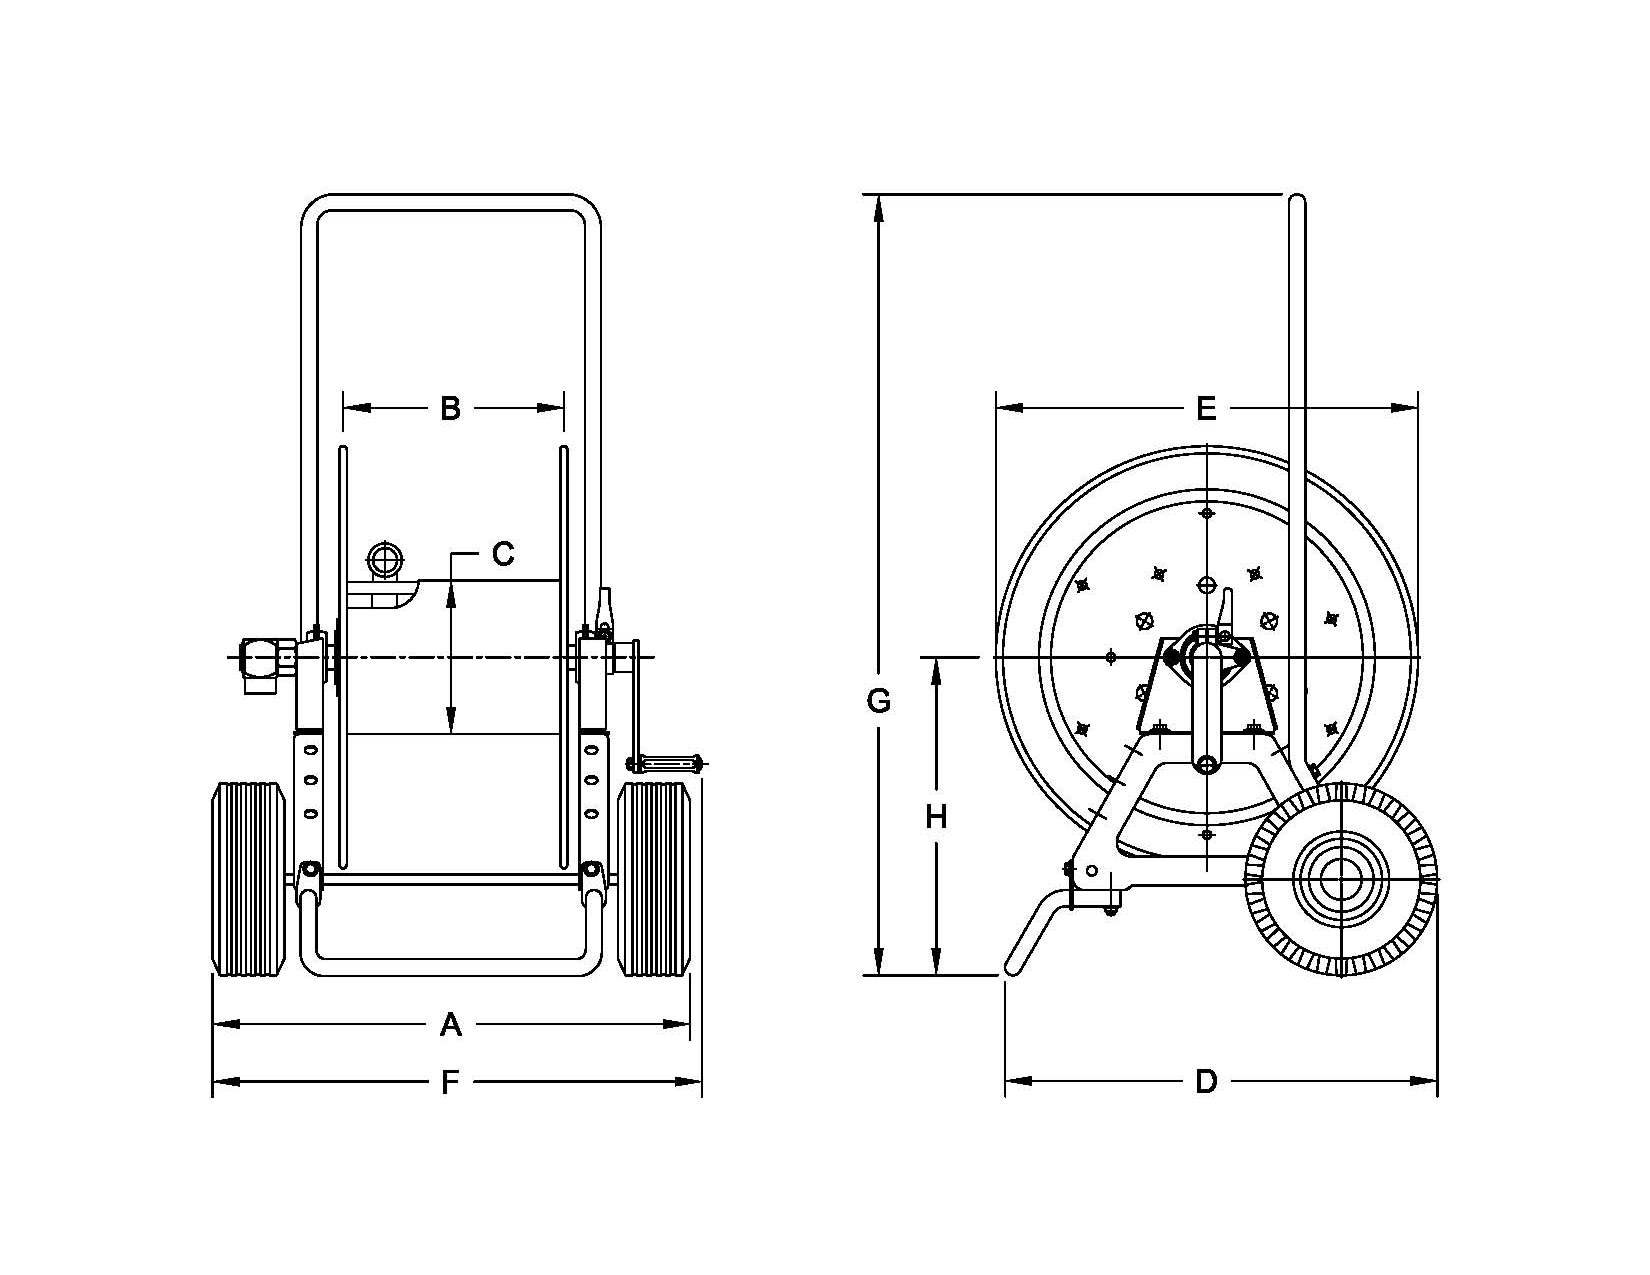 AT1200 Schematic_1492193316 atc1250 series hannay reels official site hannay reel wiring diagram at panicattacktreatment.co